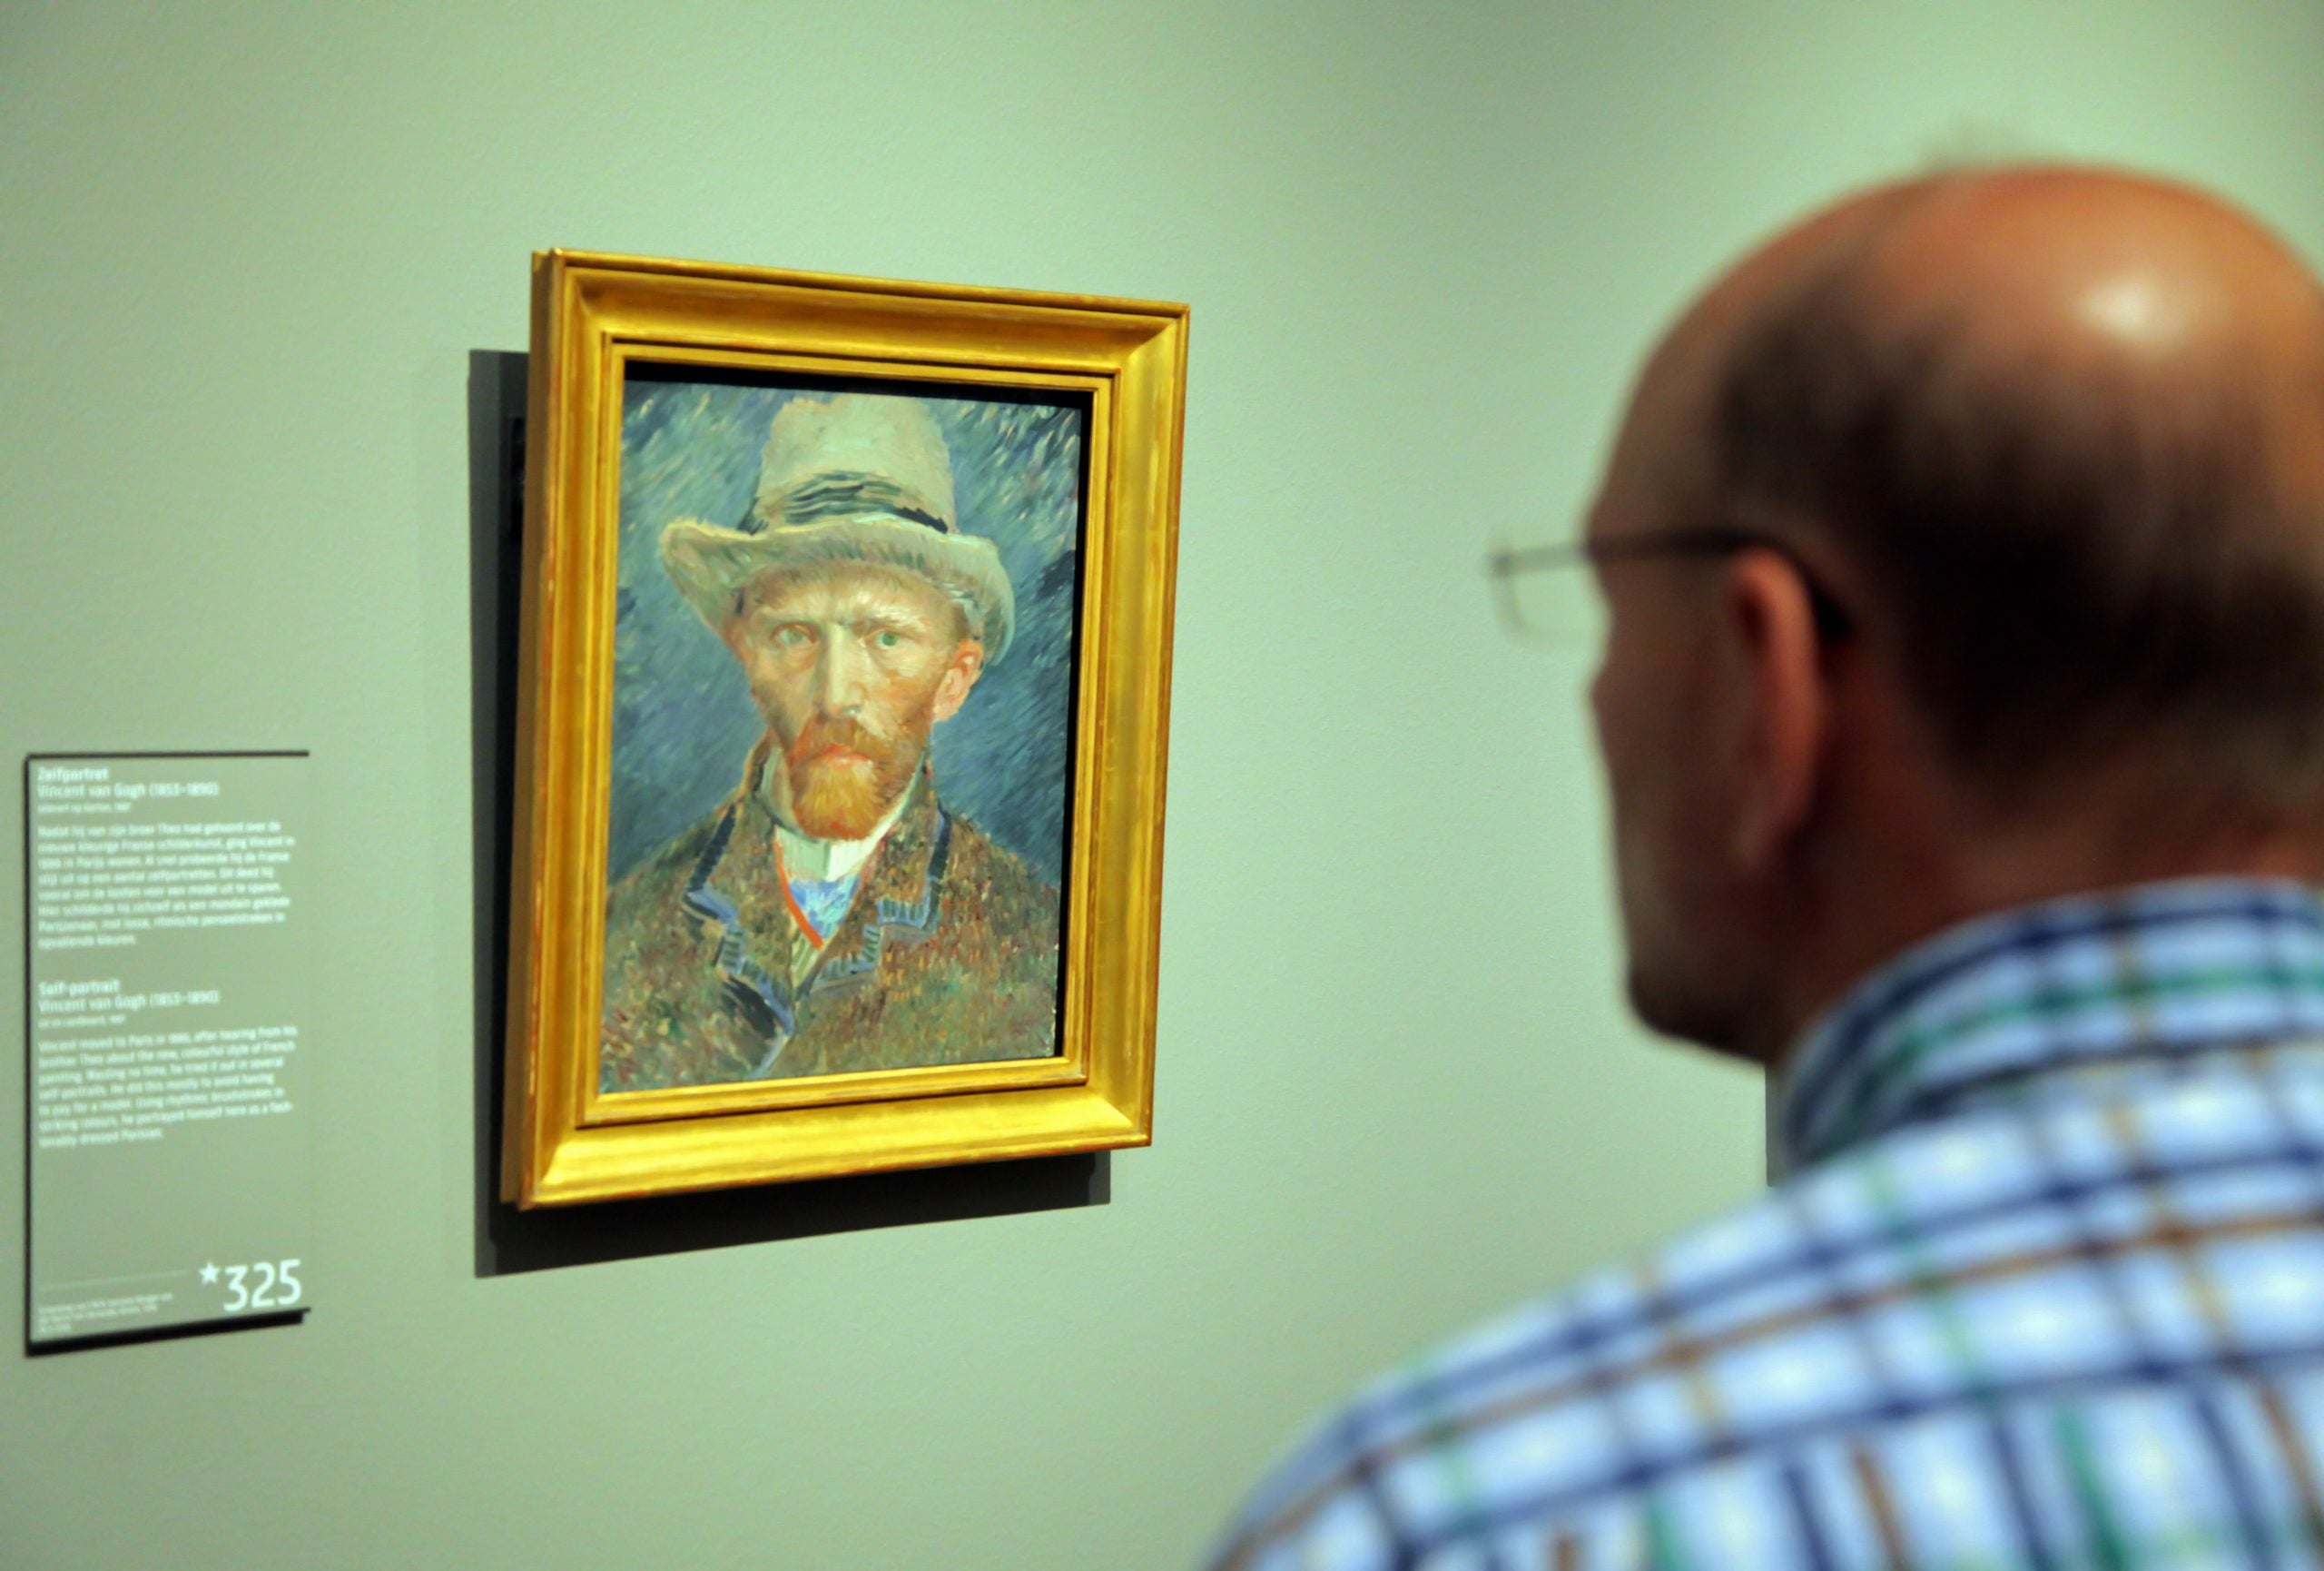 Amsterdam: Van Gogh's wet paint under a microscope, and the world's most silent tourists